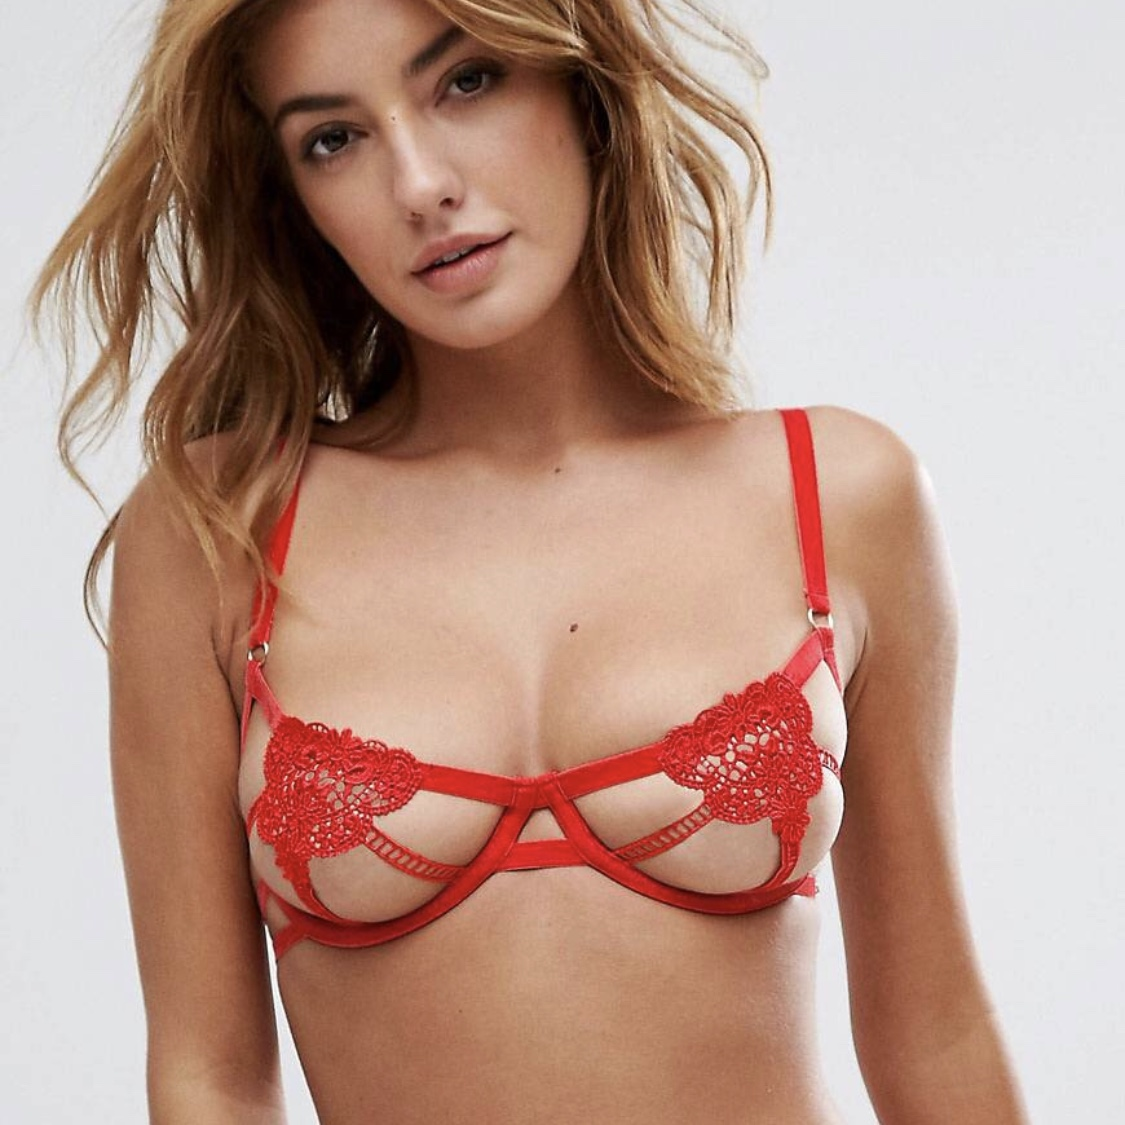 576da003597e8 REDUCED    Sold out Asos red Bluebella red bra size 30c x - Depop